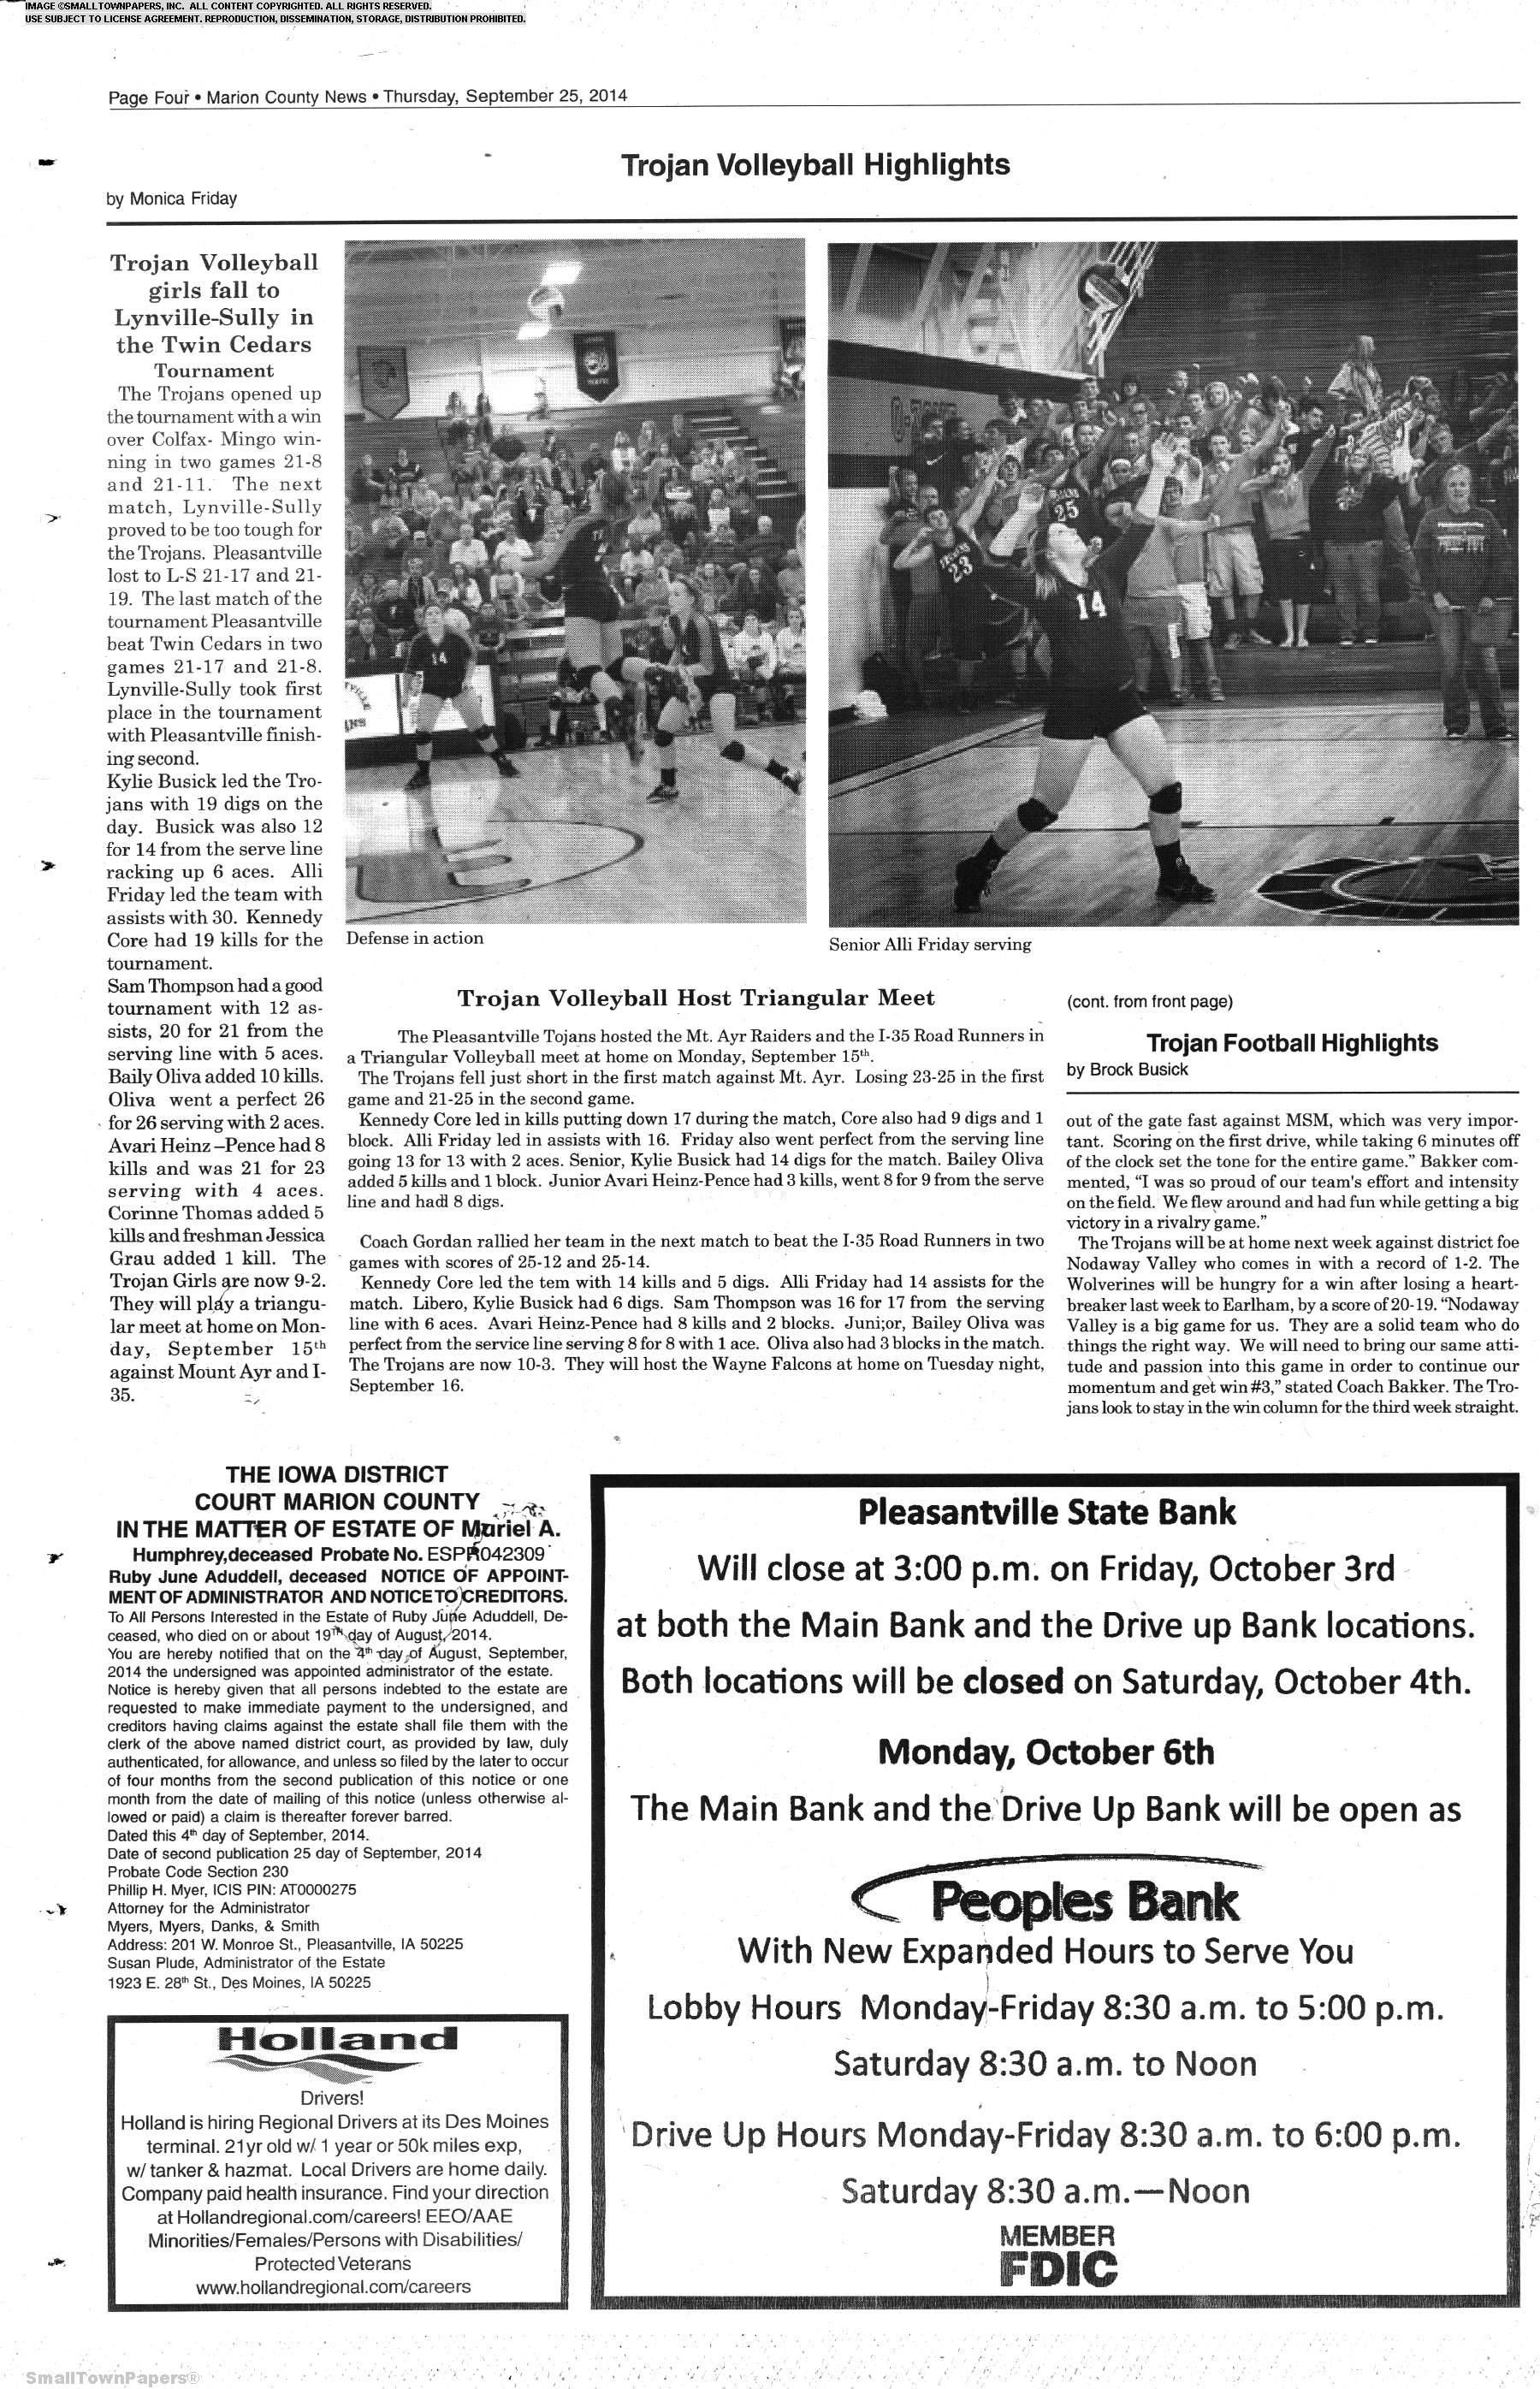 Marion County News September 25 Page 4 Marion County